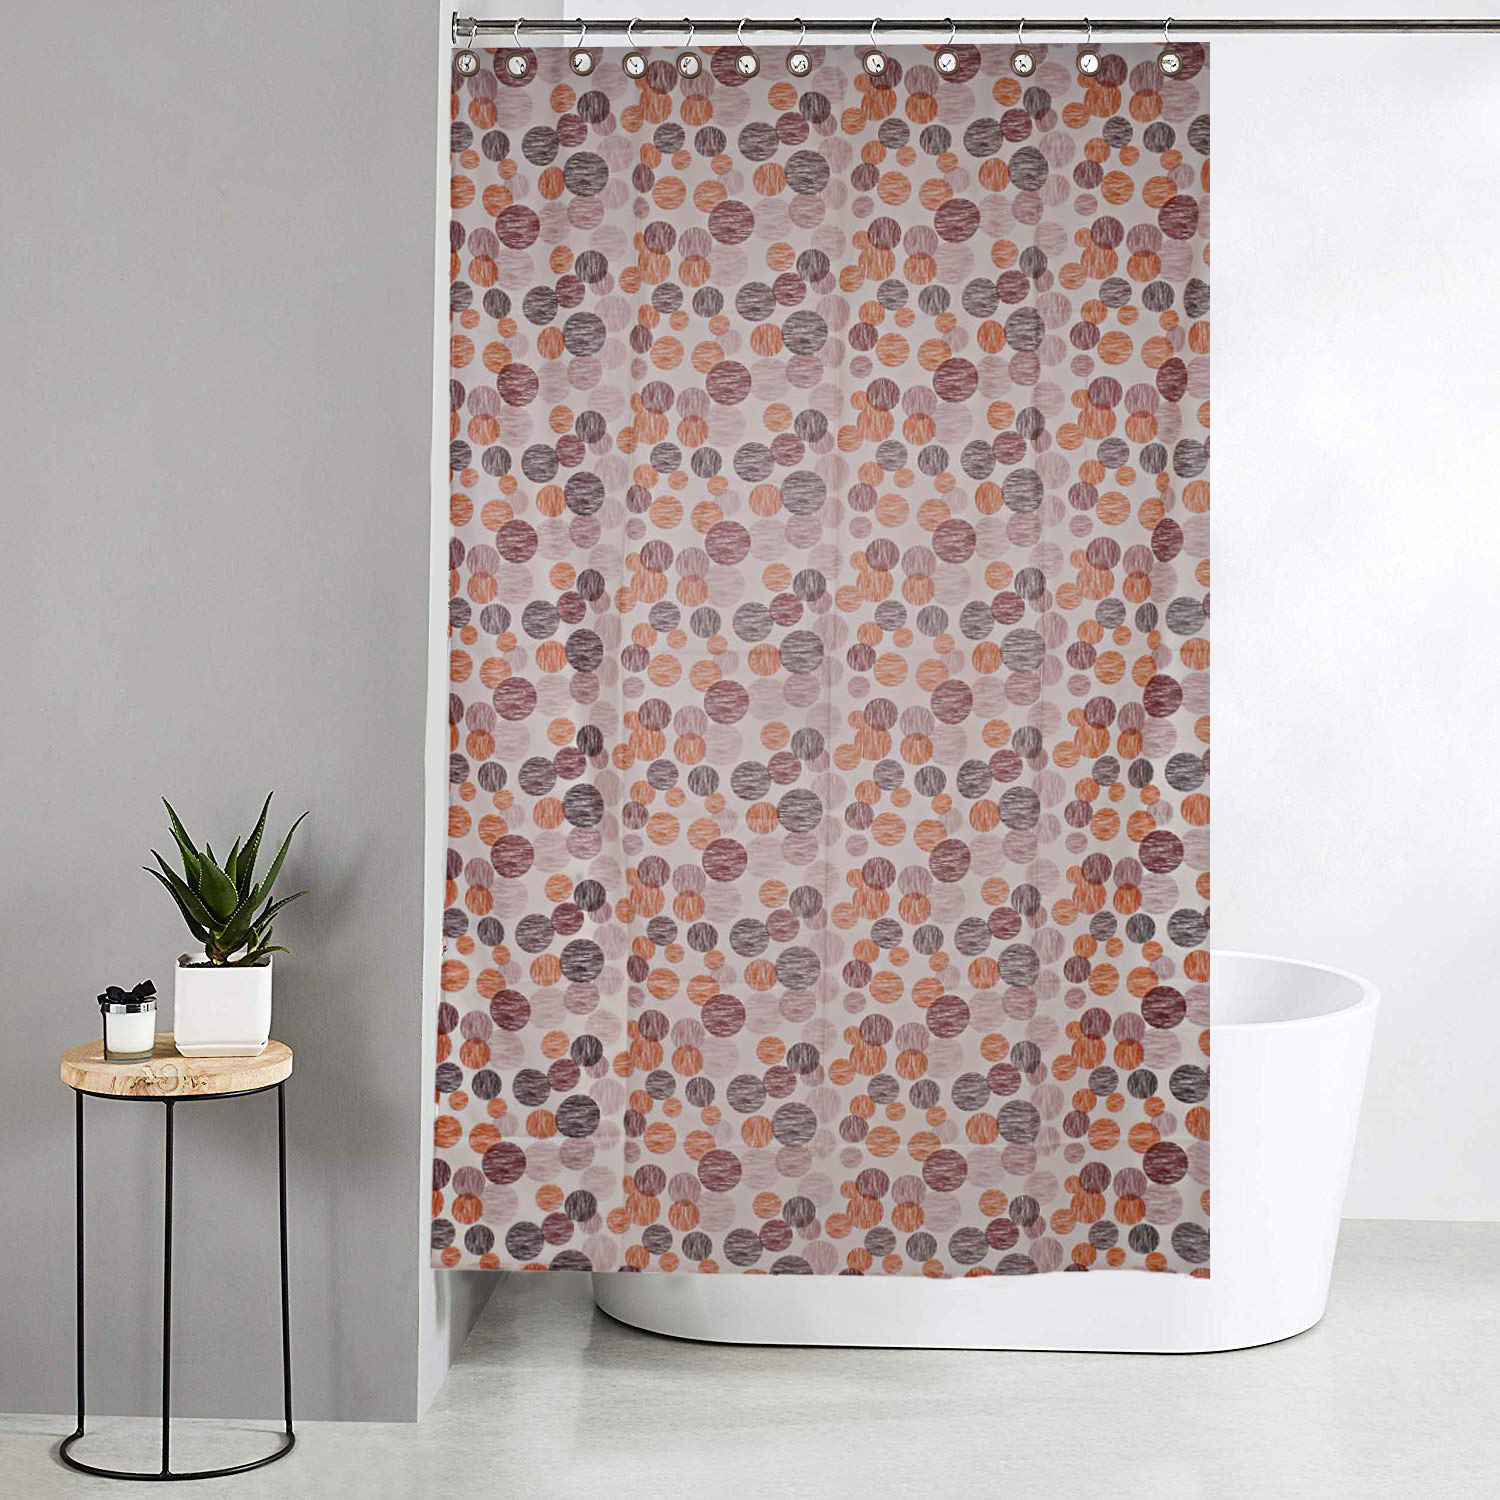 Kuber Industries Dots Design Waterproof PVC Shower Curtain with 8 Hooks 54 inch x 84 inch (Cream)